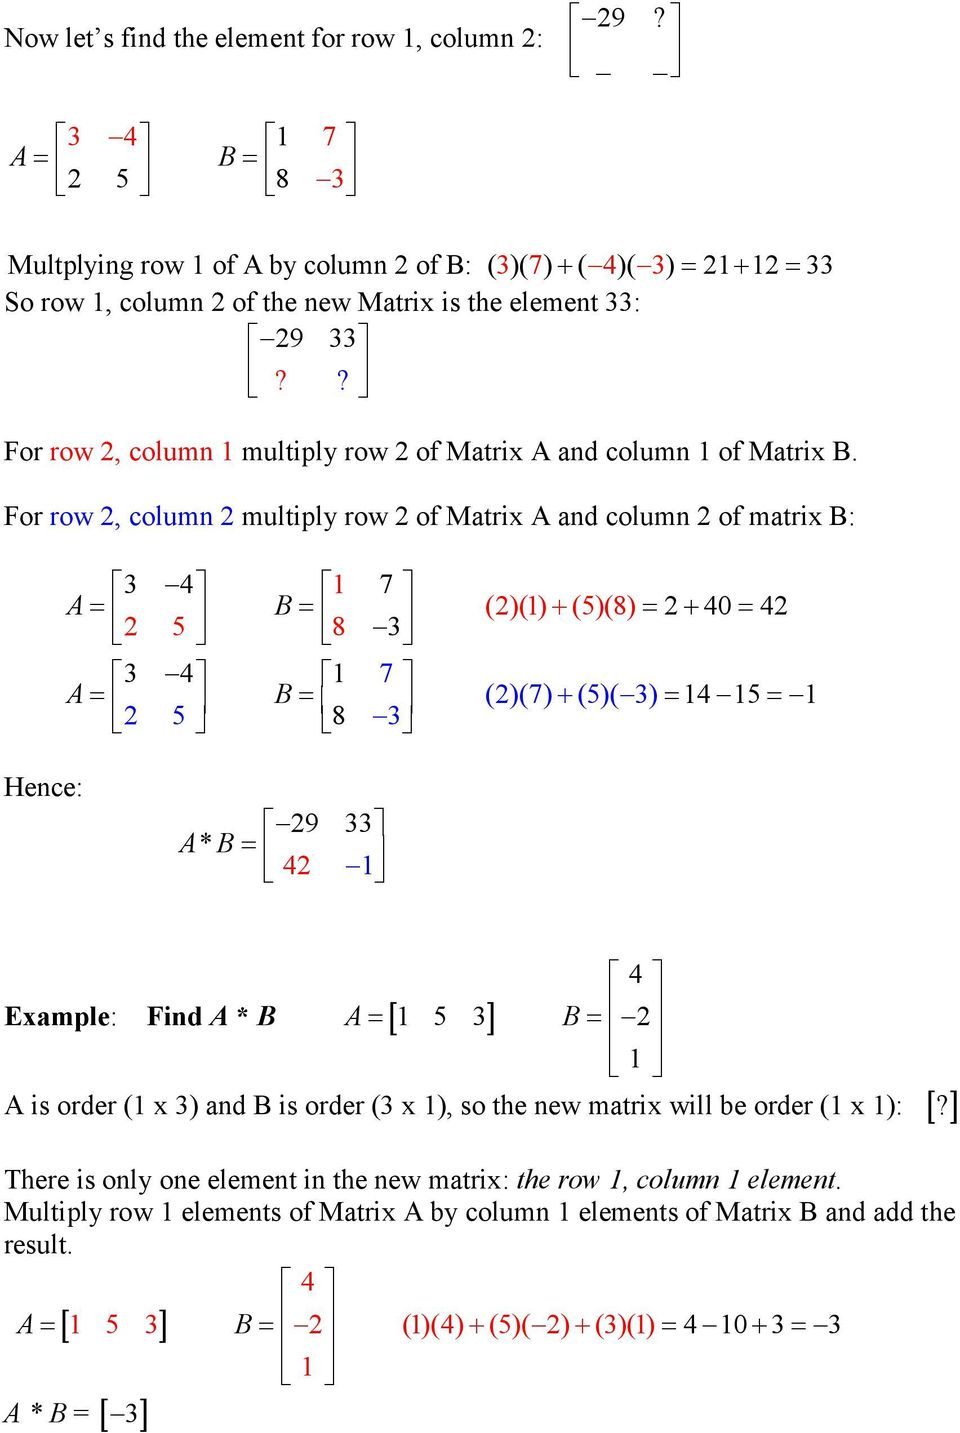 ? For row 2, column 1 multiply row 2 of Matrix A and column 1 of Matrix B.